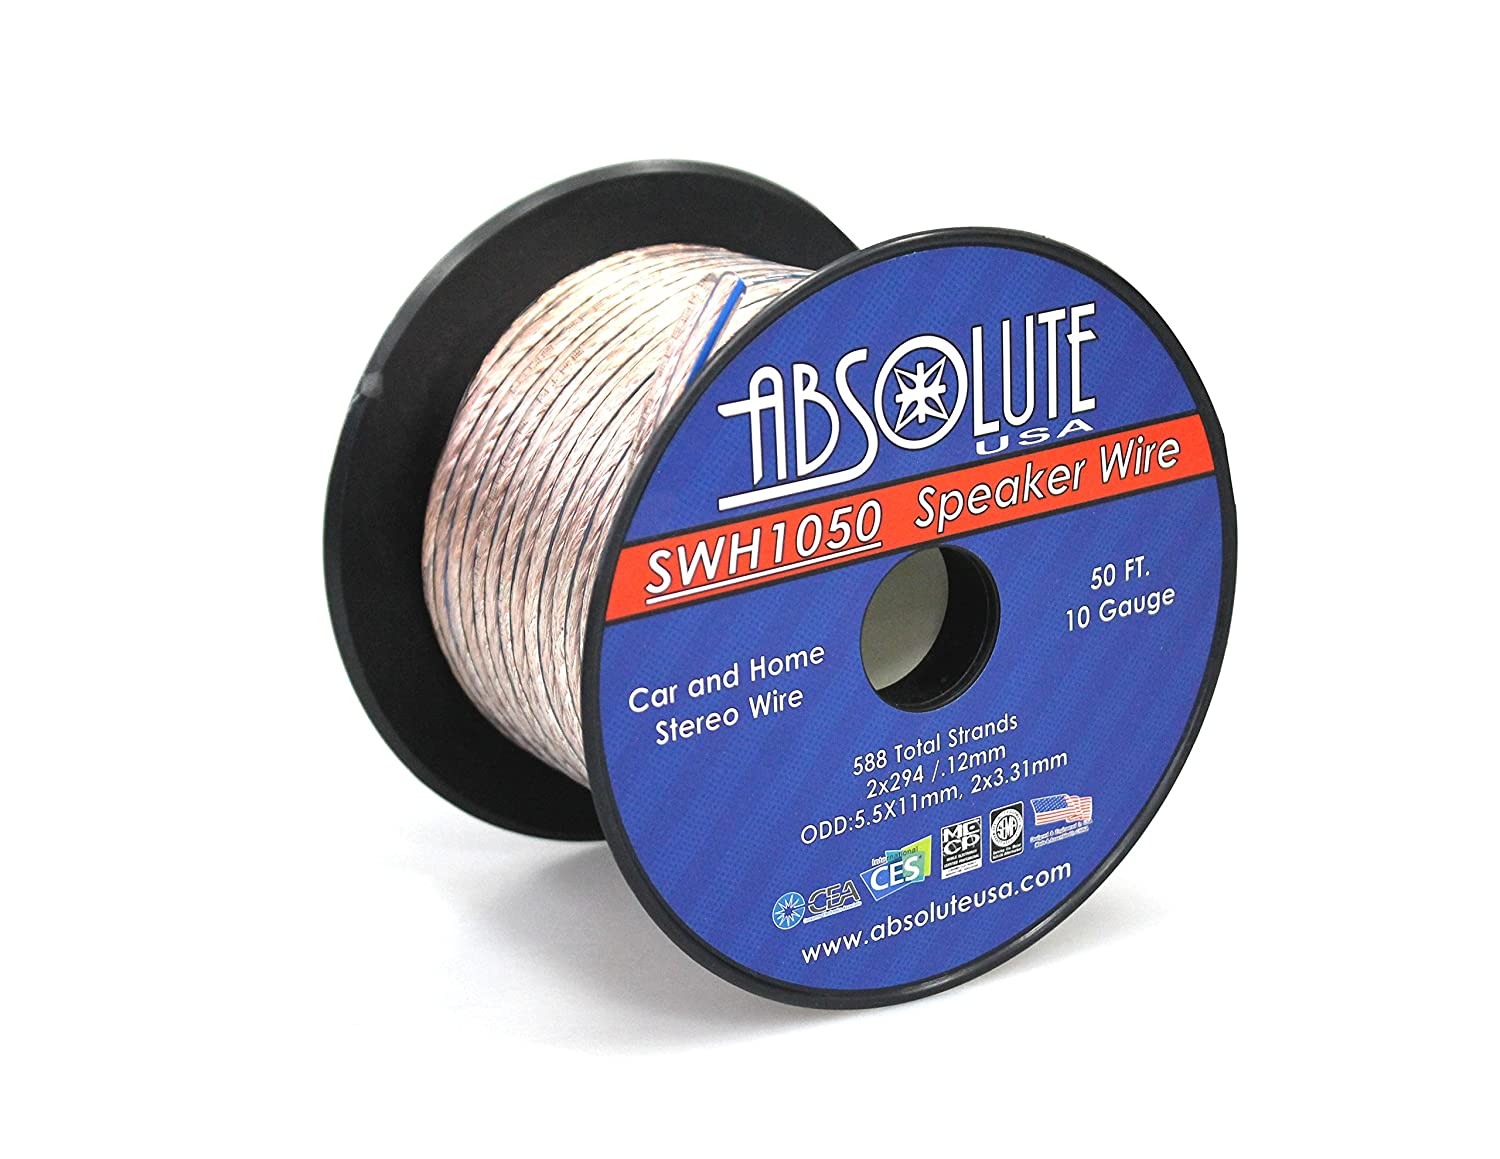 Absolute USA SWH1050 10 Gauge Car Home Audio Speaker Wire Cable Spool 50' Absolute USA Inc.